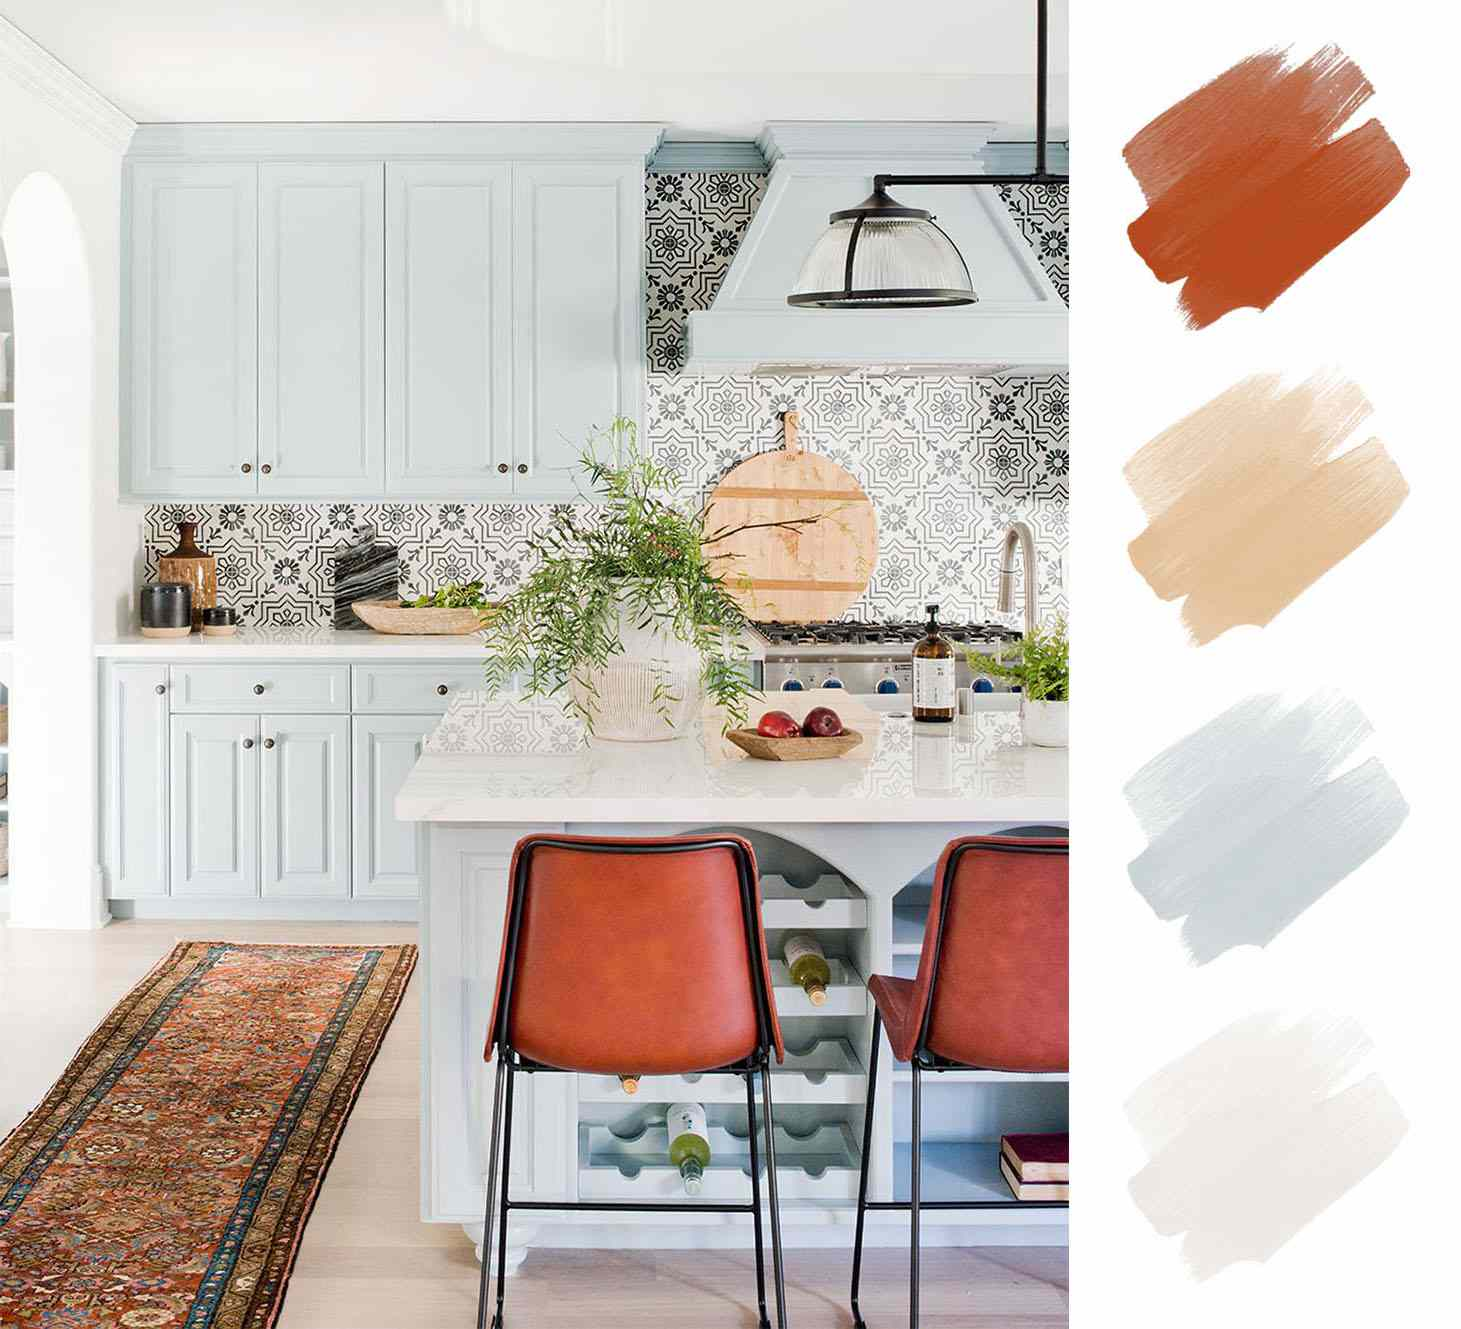 kitchen color schemes - saddle brown and sky blue